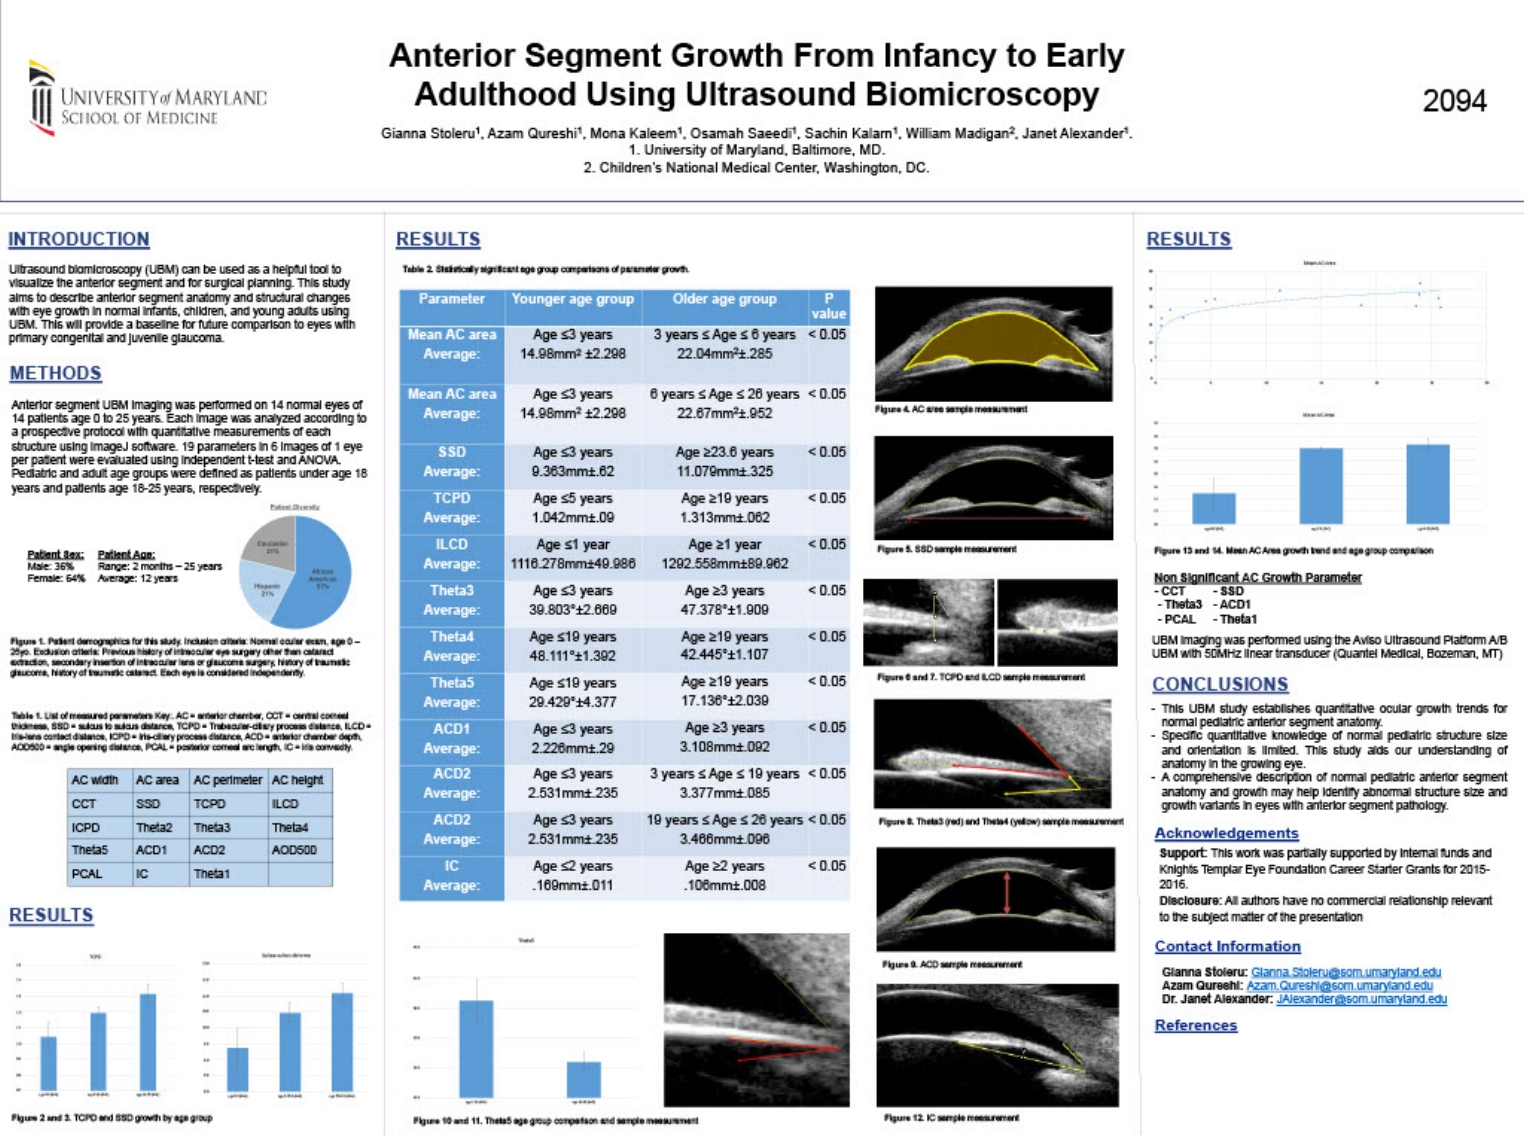 ARVO 2017  Title:Anterior Segment Growth From Infancy to EarlyAdulthood Using Ultrasound Biomicroscopy